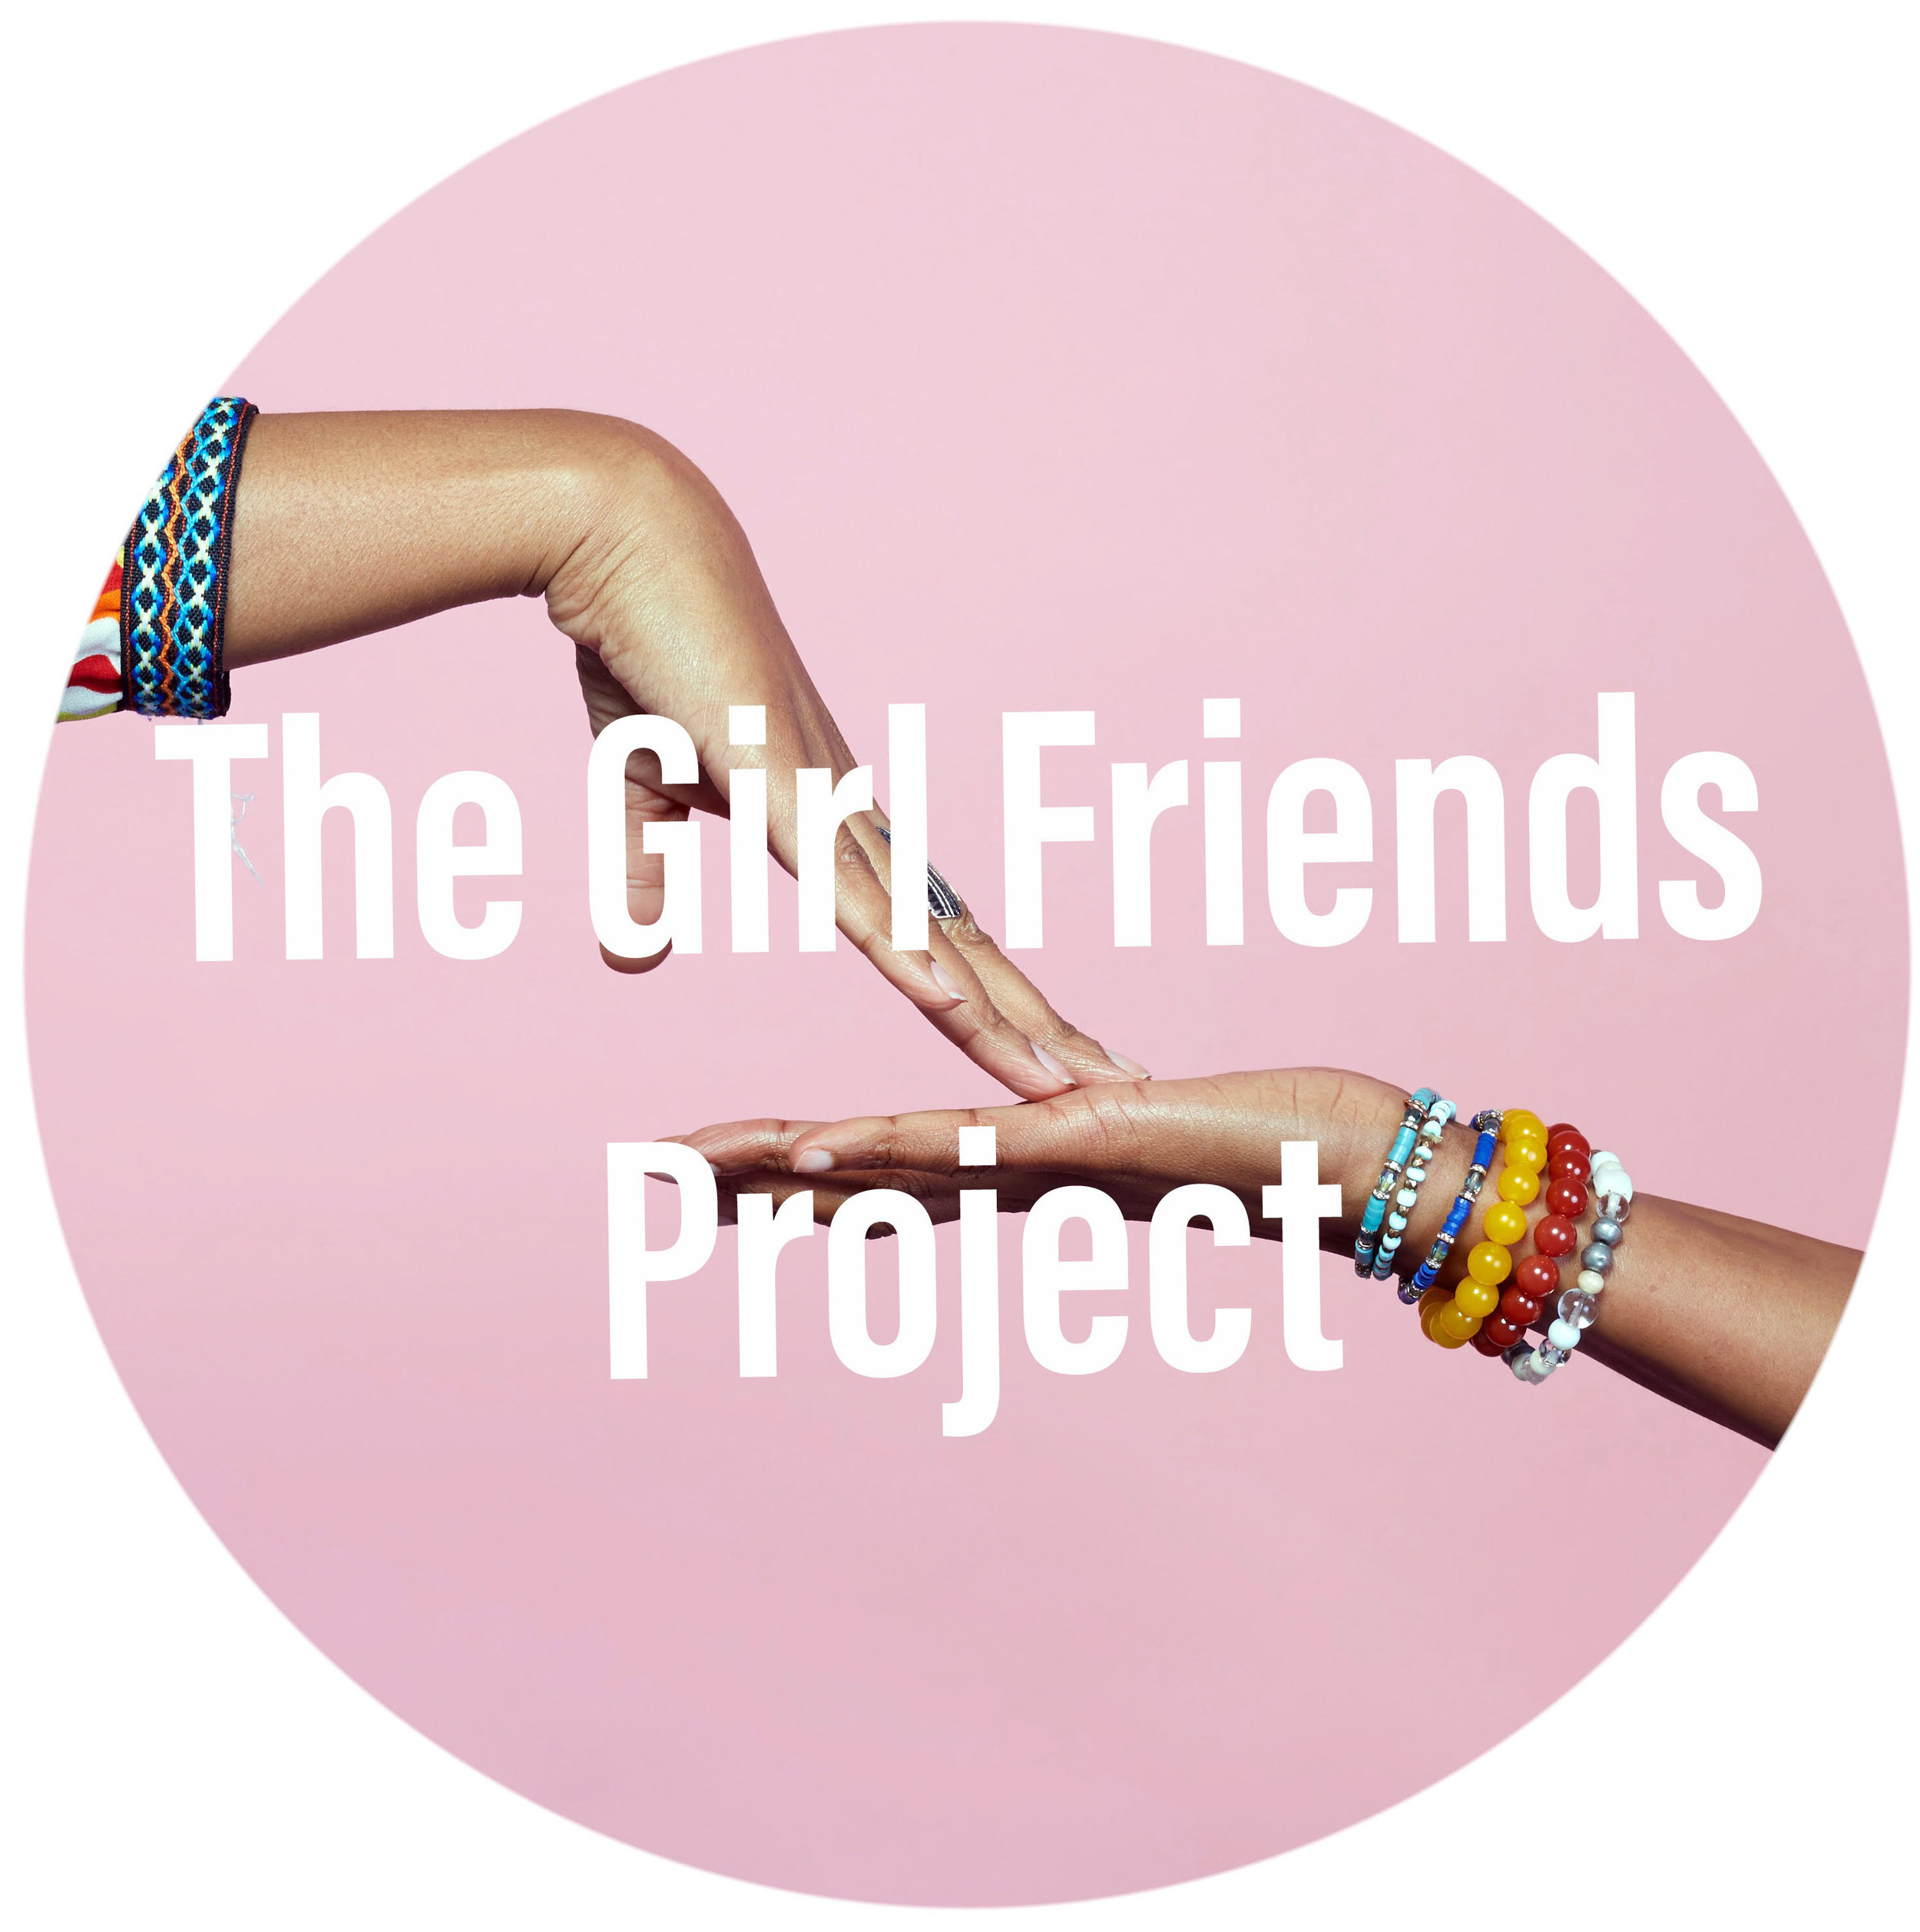 GirlFriendsProject.icon.jpg